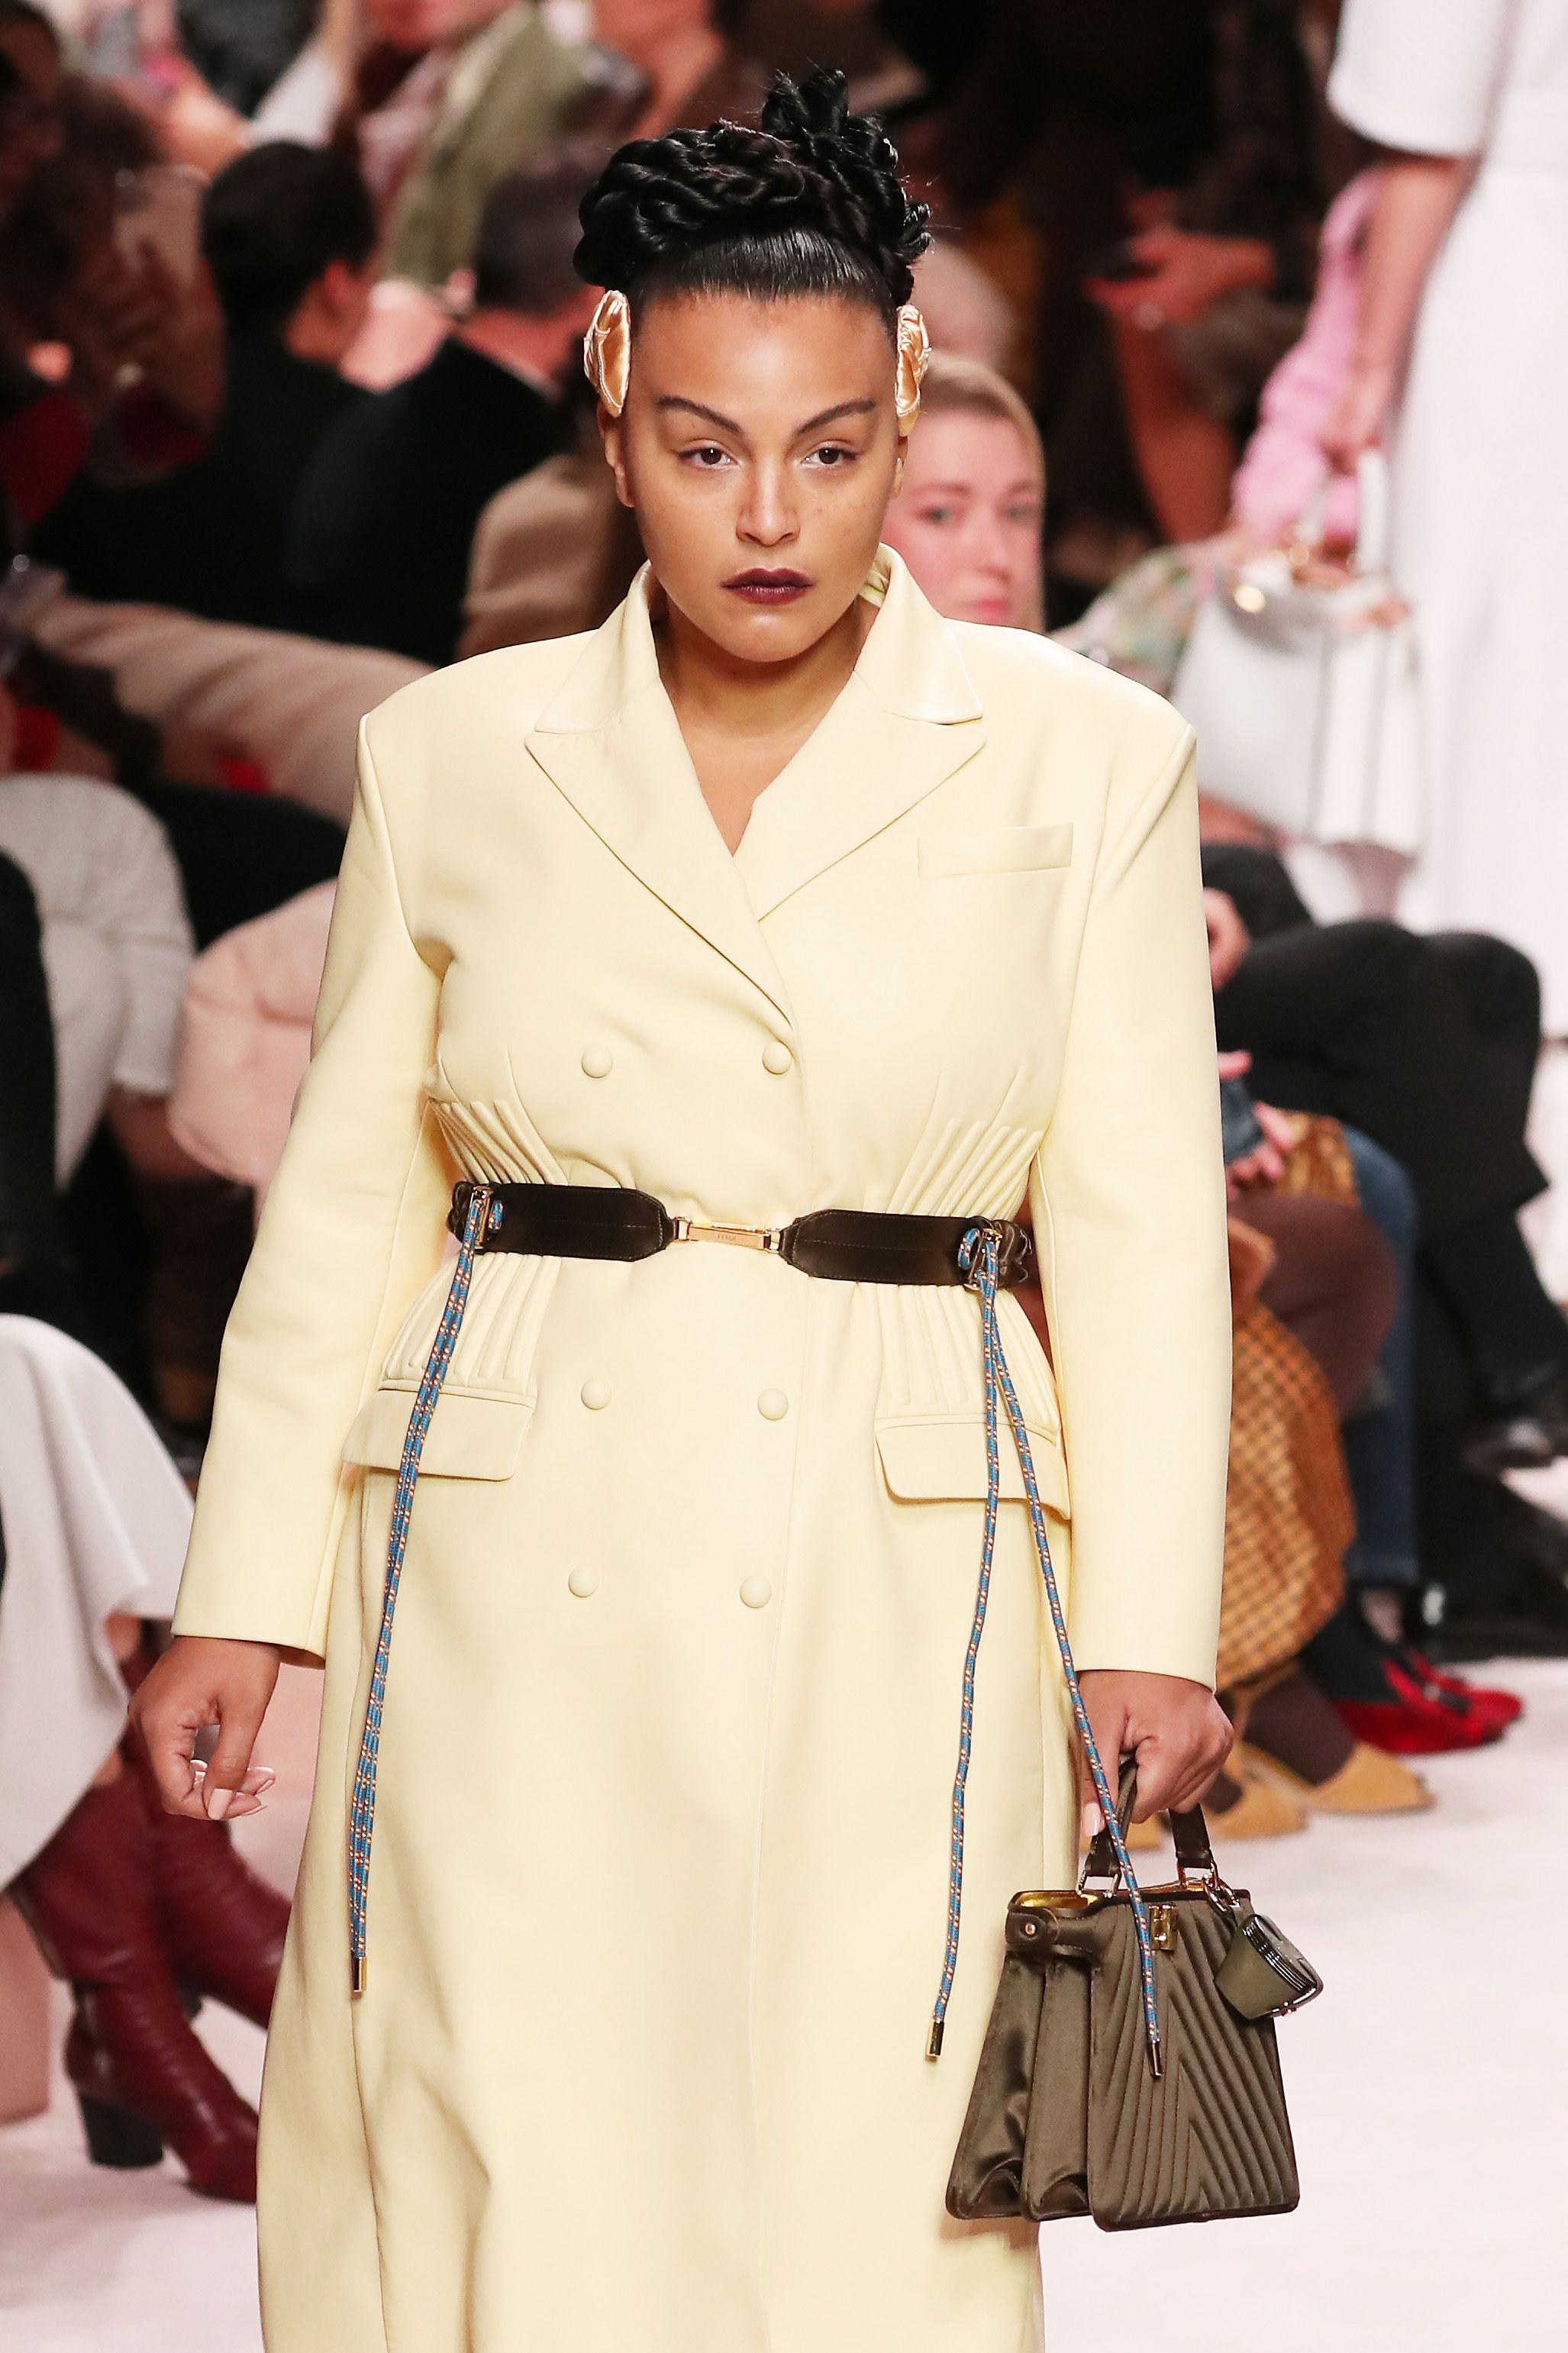 Fendi Fall 2020 Runway Features Plus Size Models Paloma Elsesser And Jill Kortleve